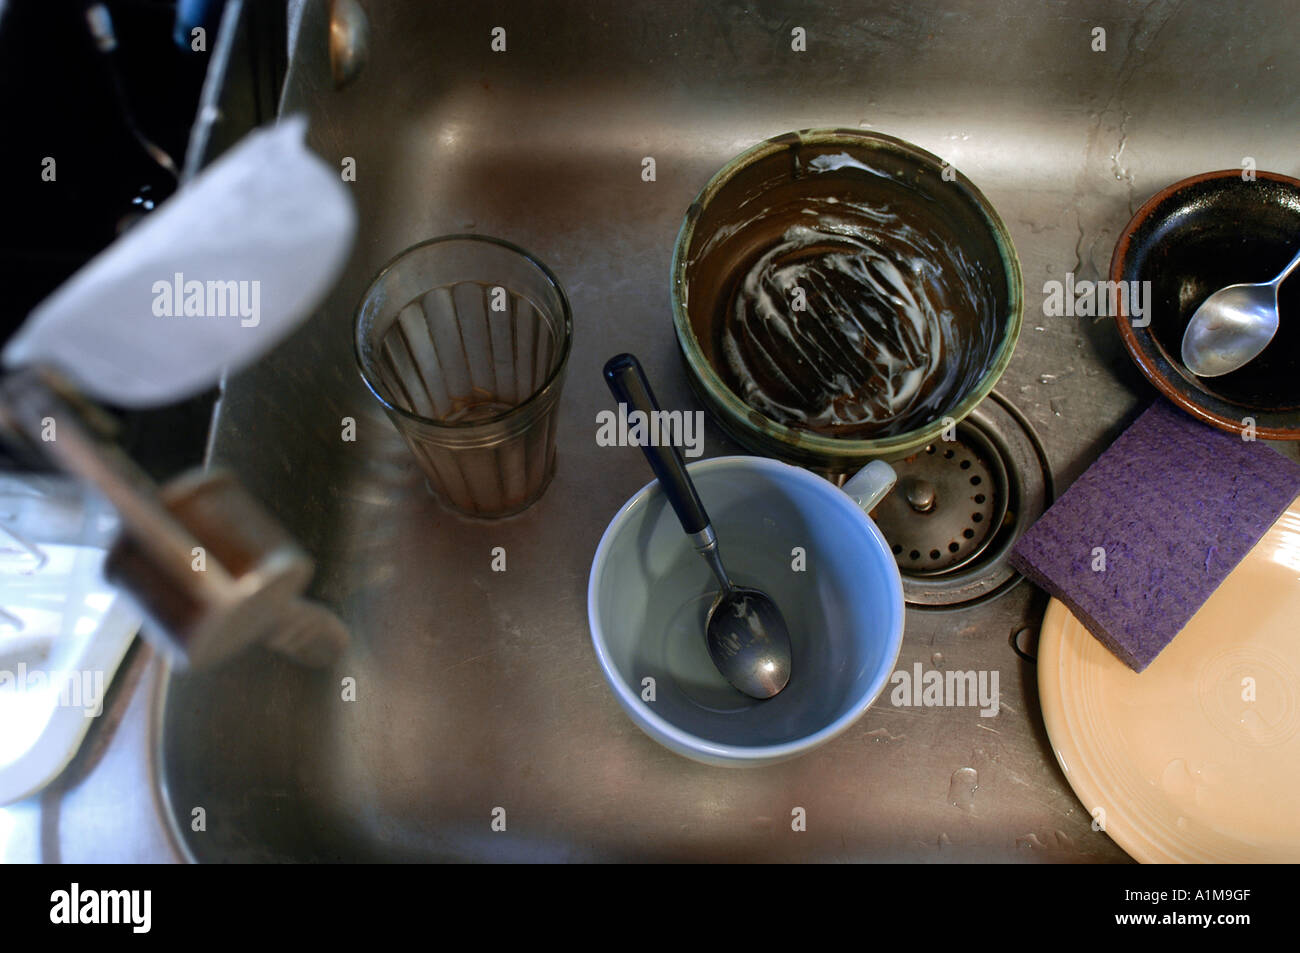 Dirty dishes in a dirty sink Stock Photo